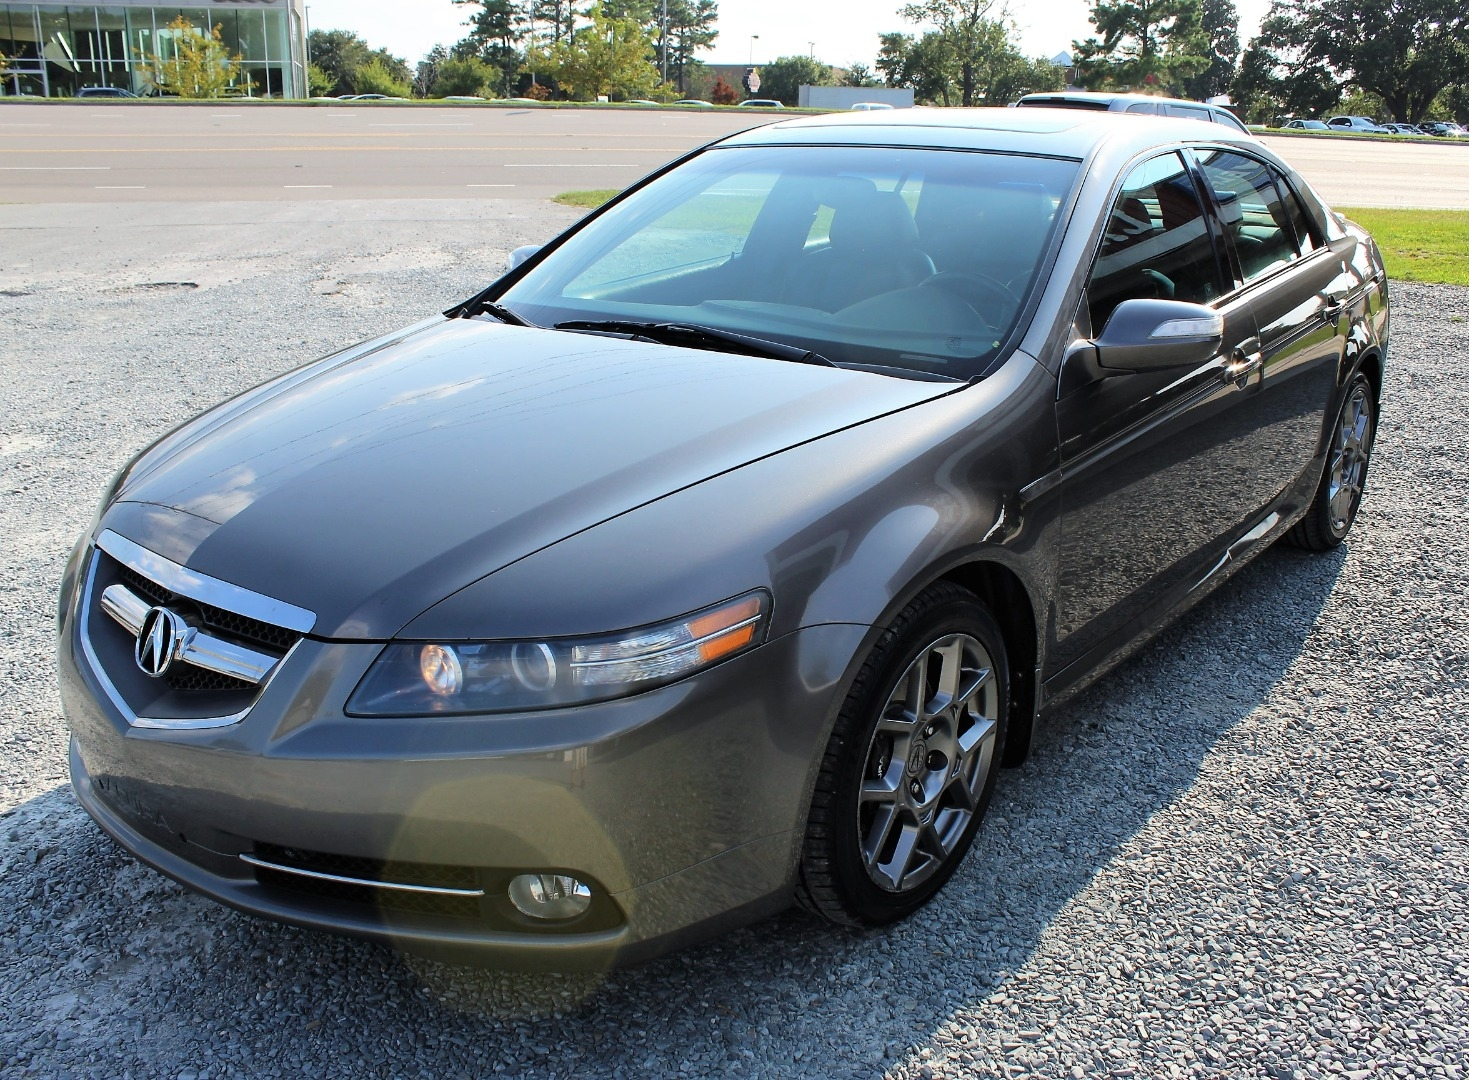 2008 Acura Tl 4dr Sdn Auto Type S Larrys Used Autos Dealership In Wilmington